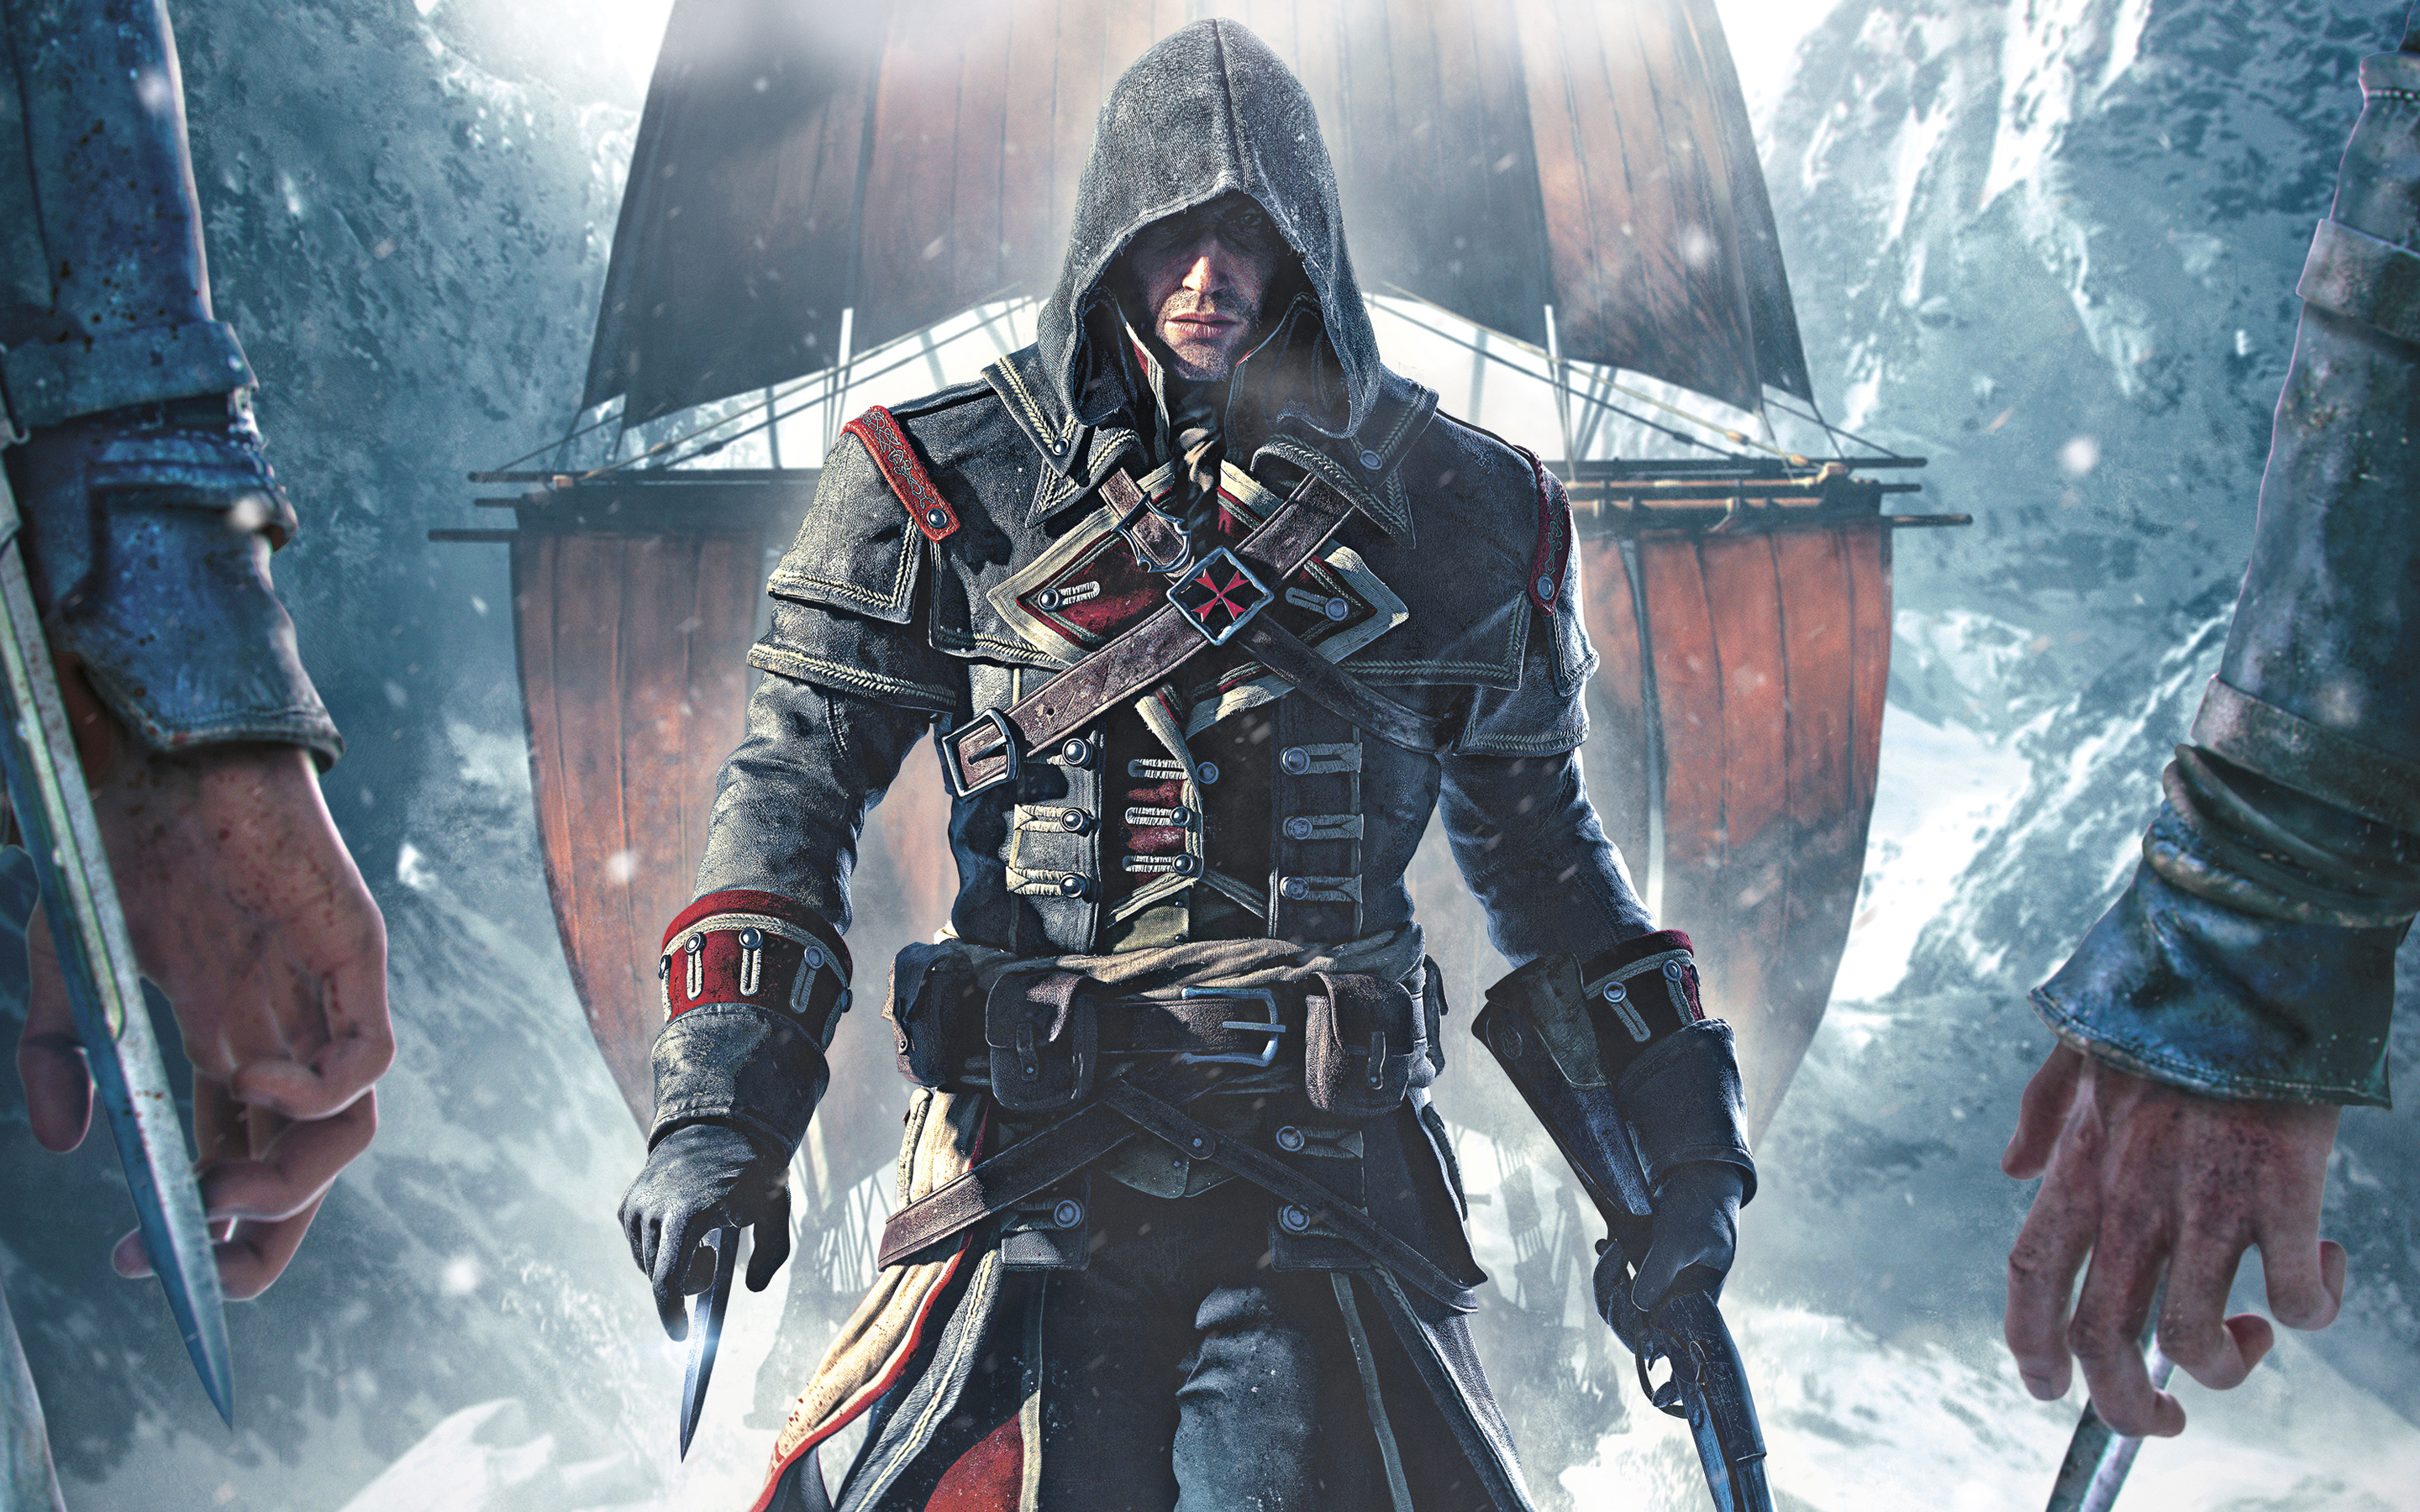 fantastic assassins creed wallpaper 40847